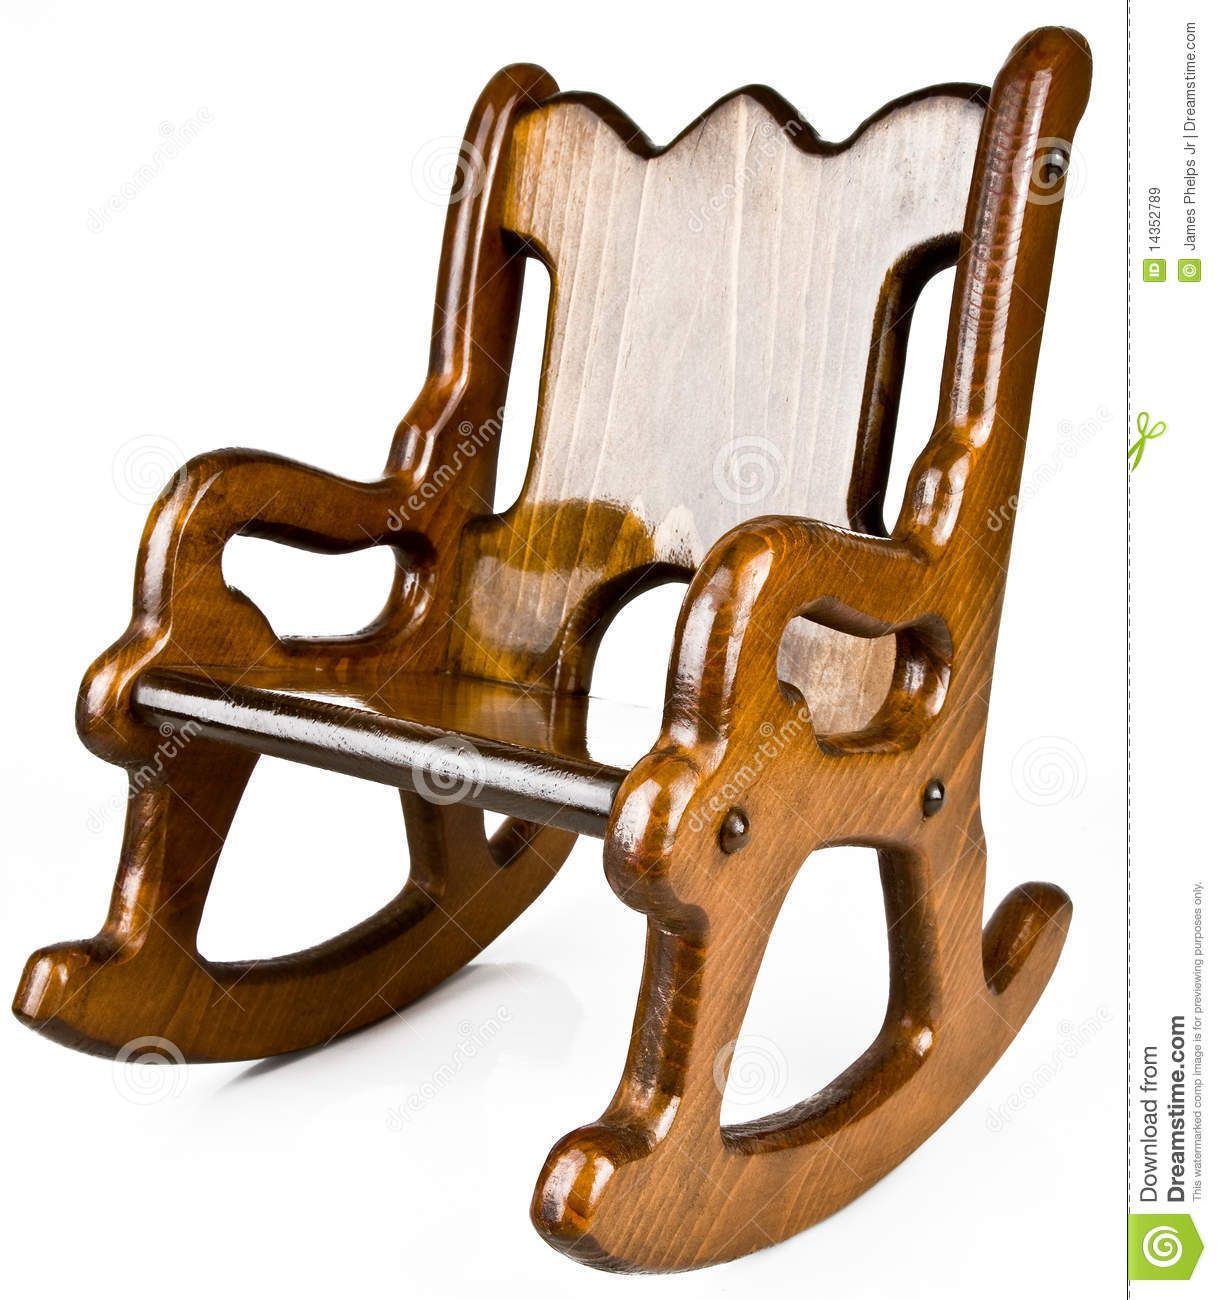 Kids Wooden Rocking Chair Swivel Spare Parts Wood Plans Pinterest